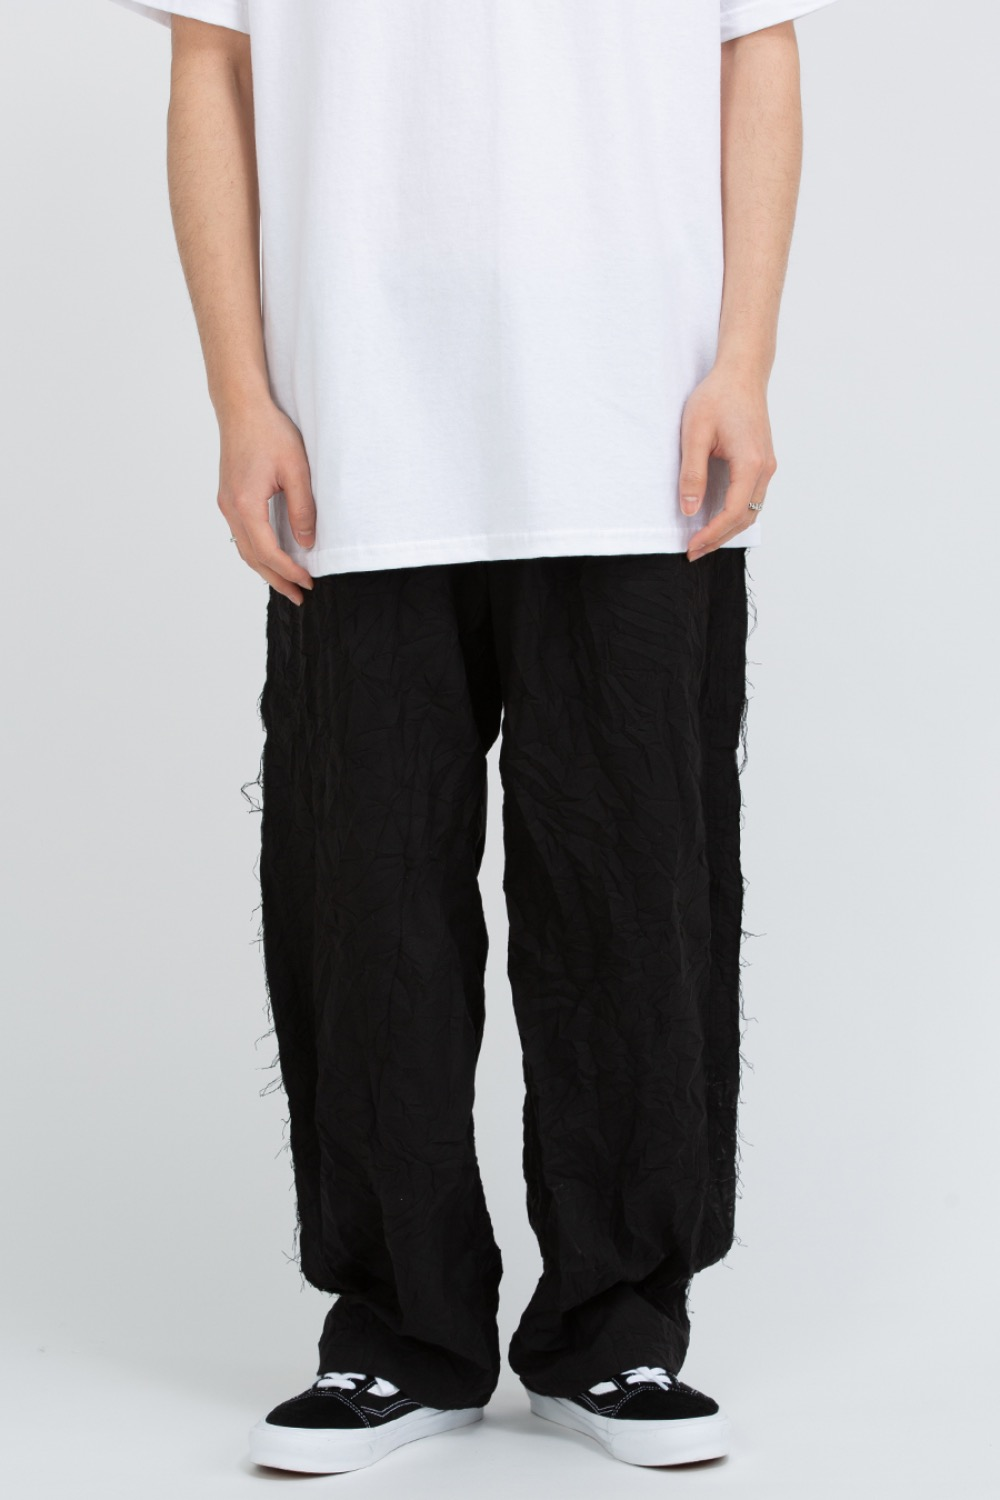 RAW EDGED CUT PANTS BLACK